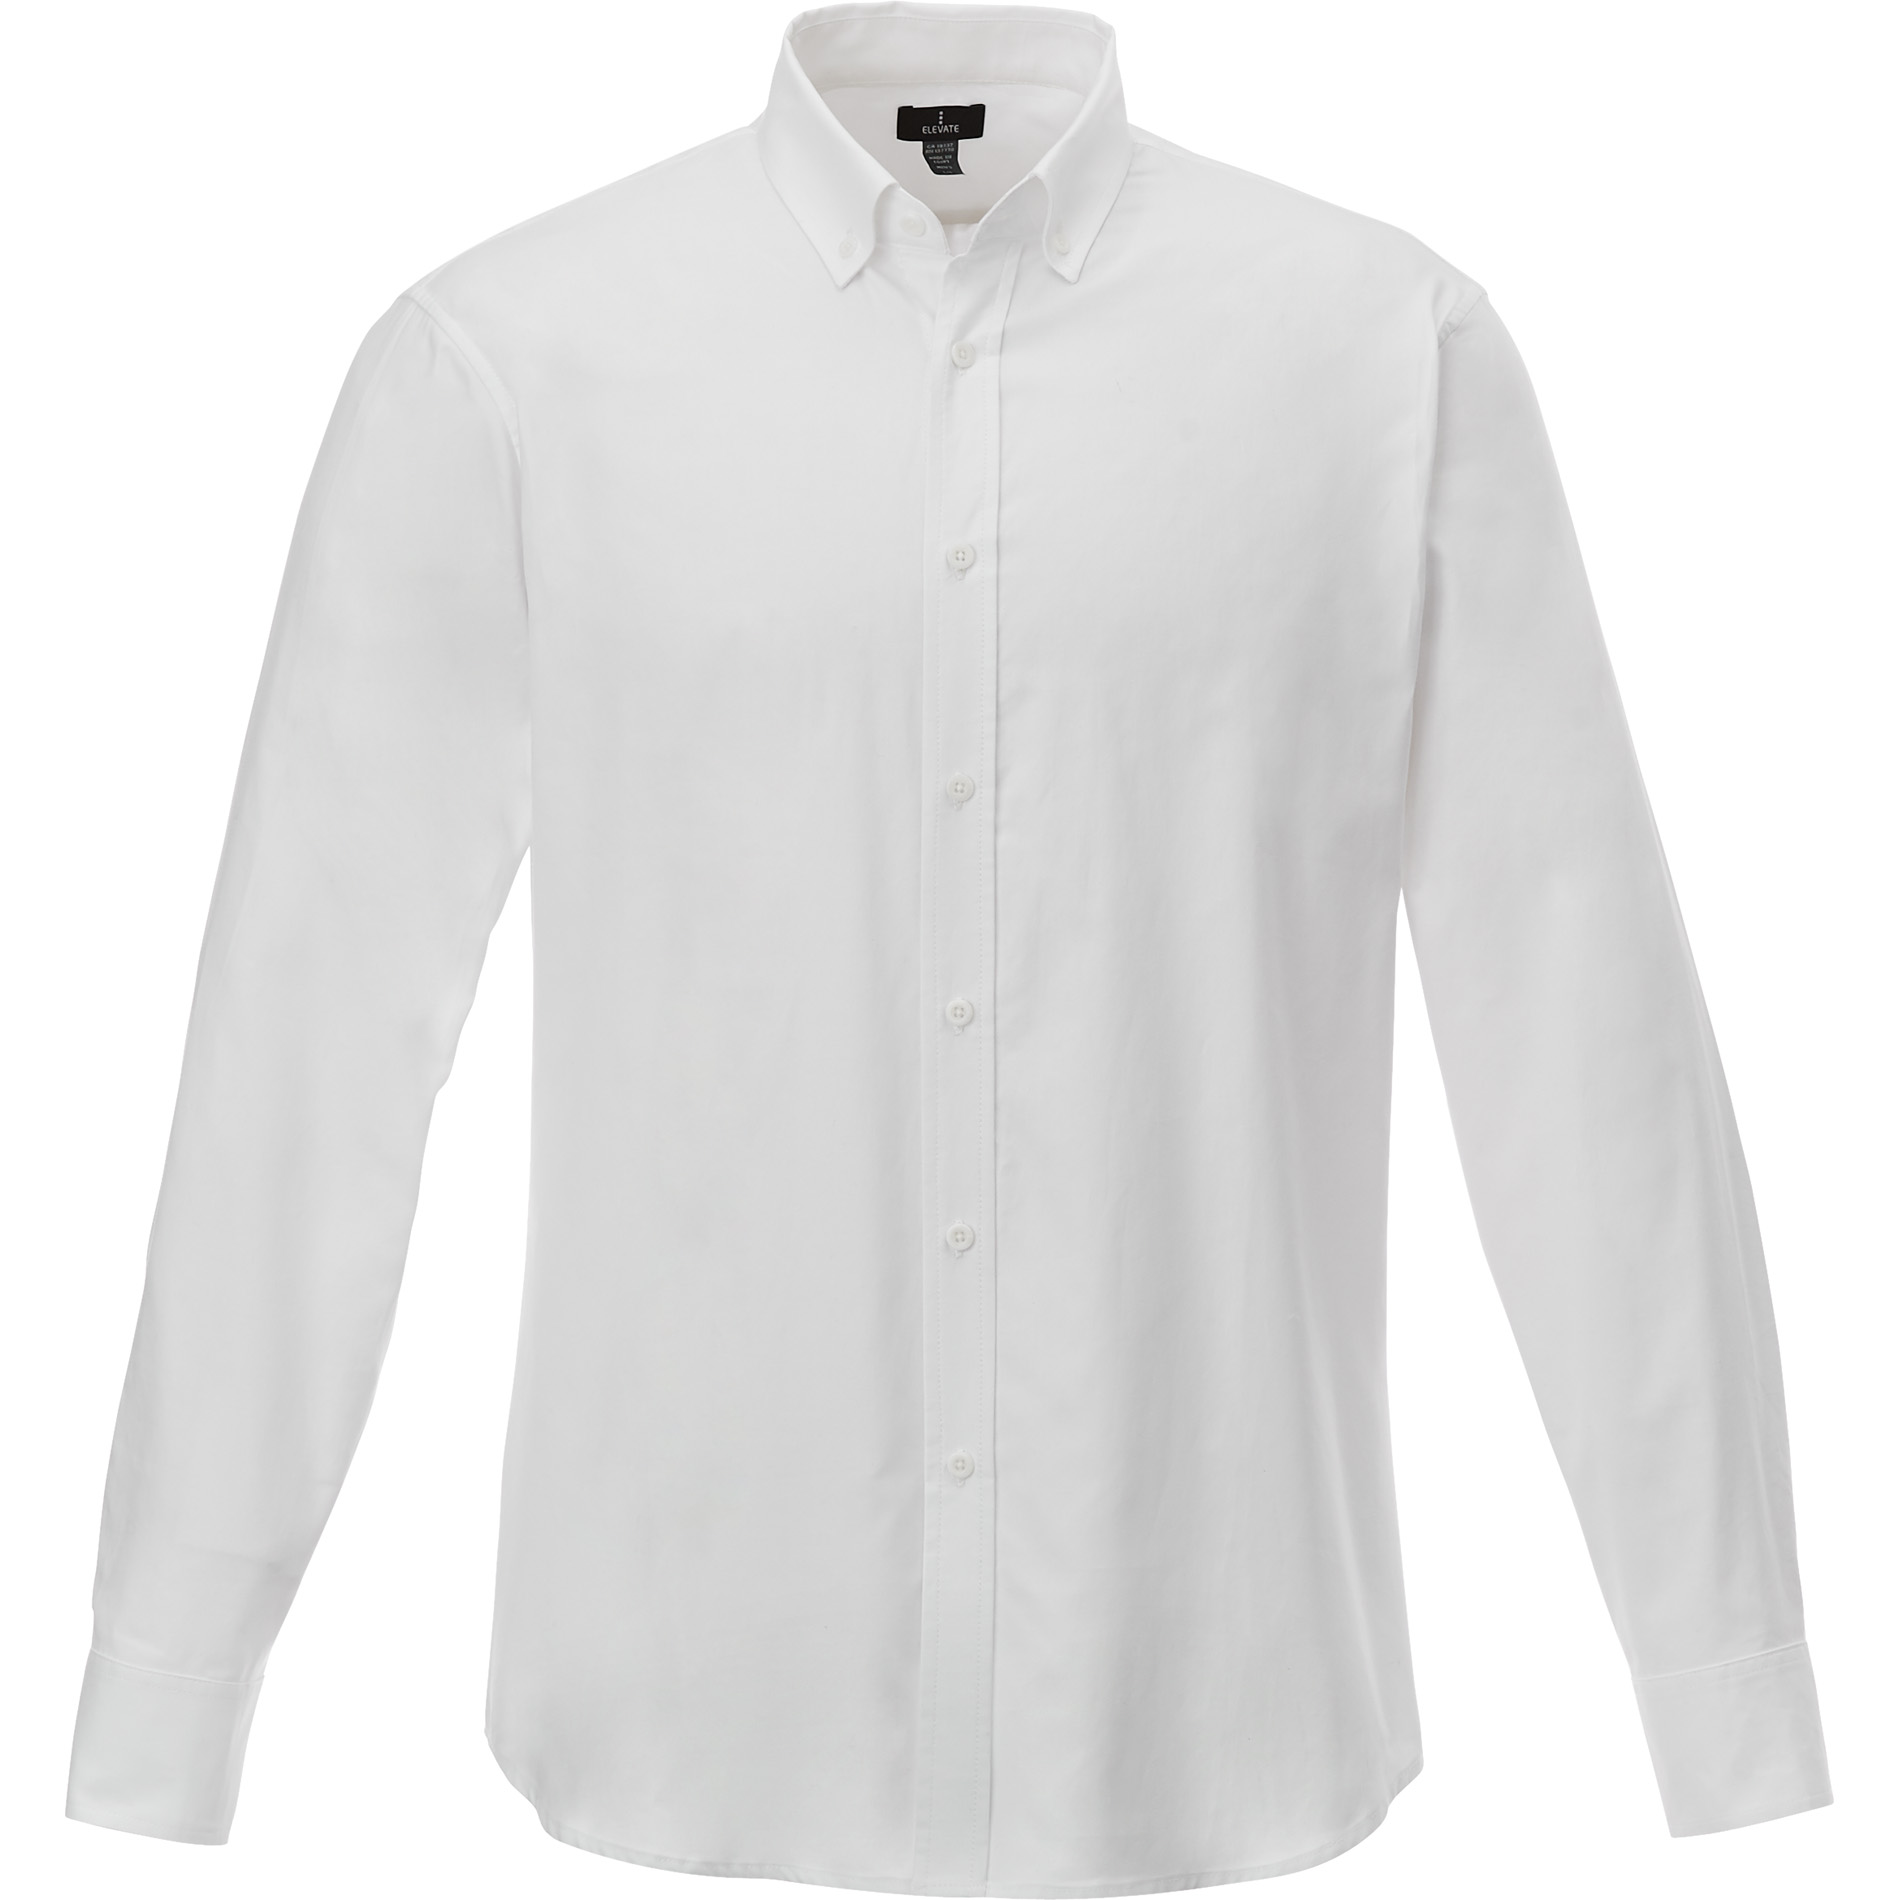 Elevate TM17701 - Men's IRVINE Oxford Long Sleeve Shirt